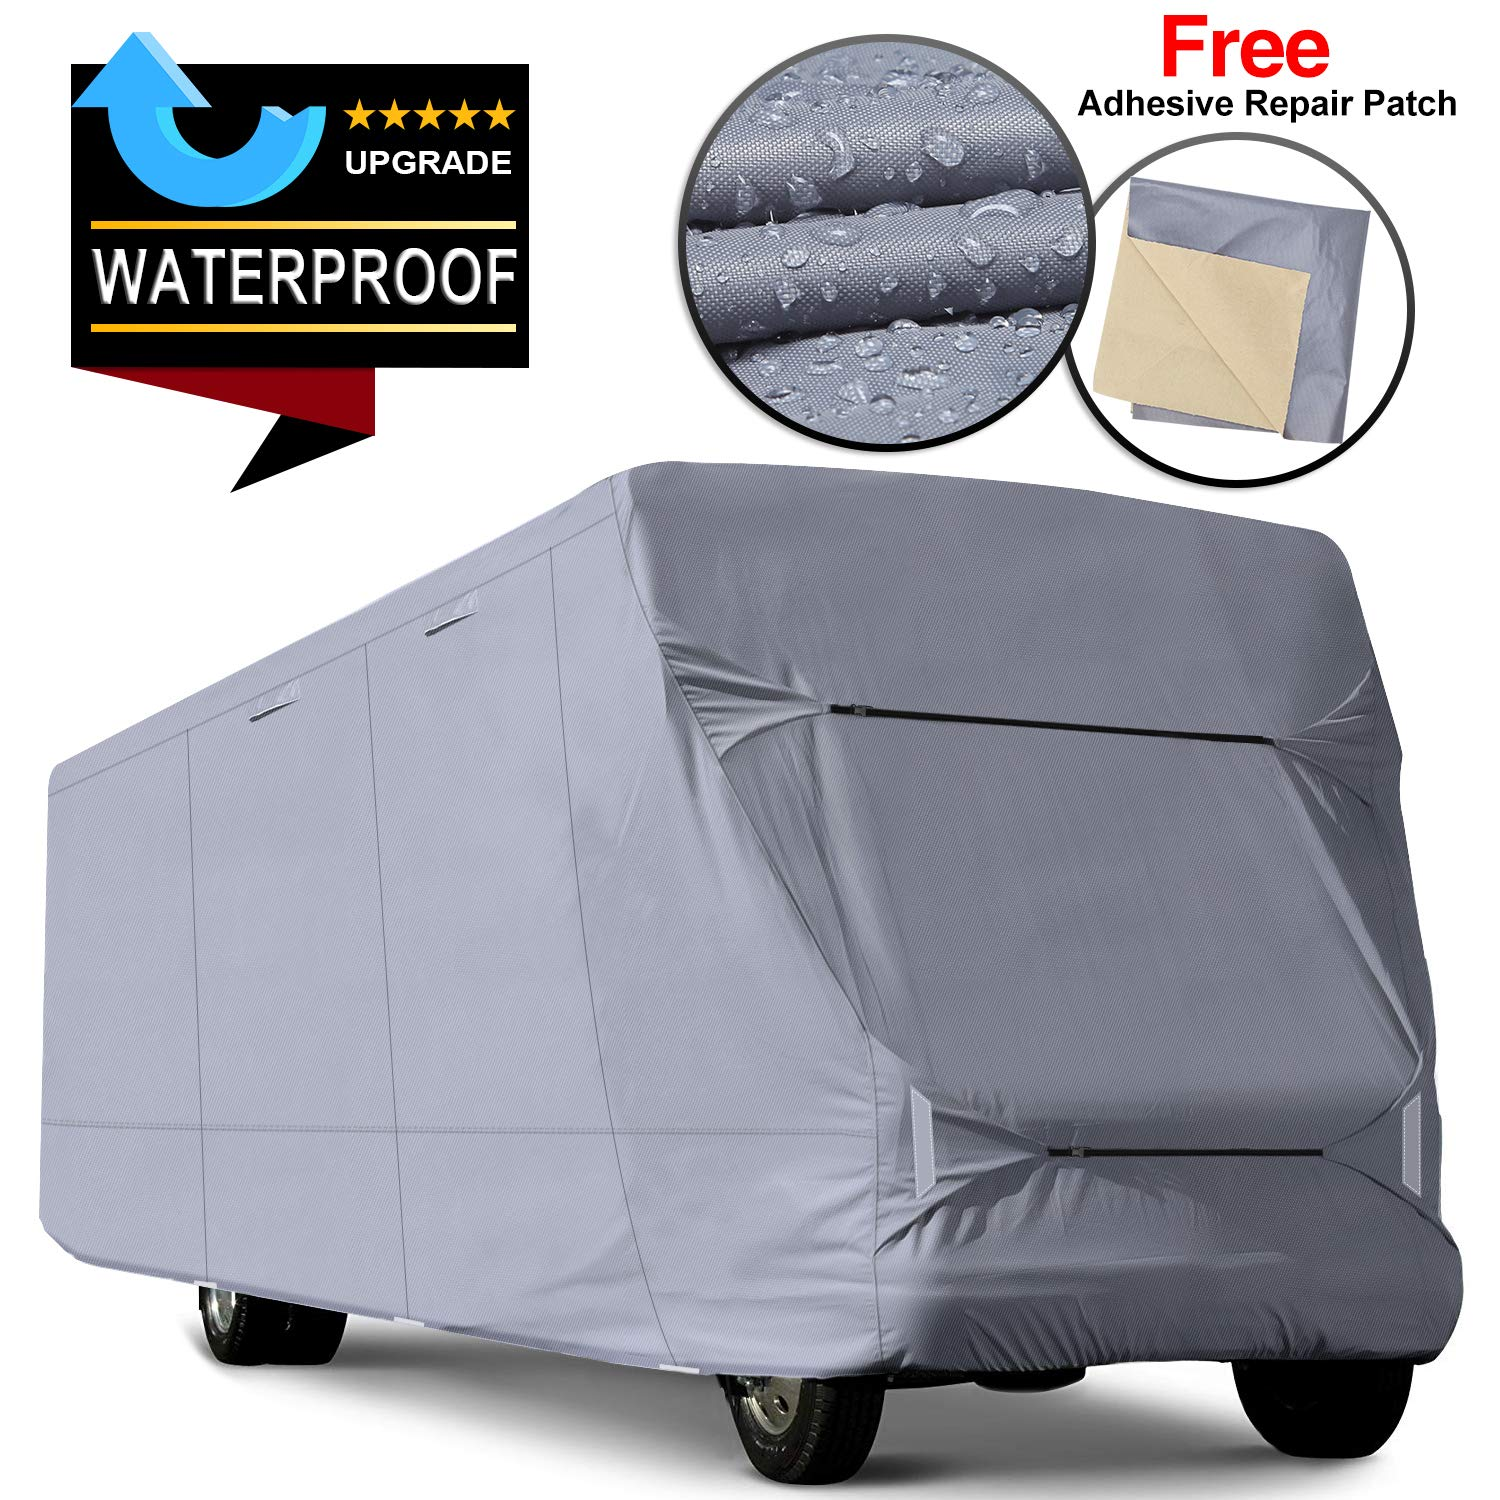 RVMasking Upgraded Waterproof Class C RV Cover, Fits 26'-29' RVs - Easy Installaiton Anti-UV Ripstop Camper Cover with Adhesive Repair Patch by RVMasking